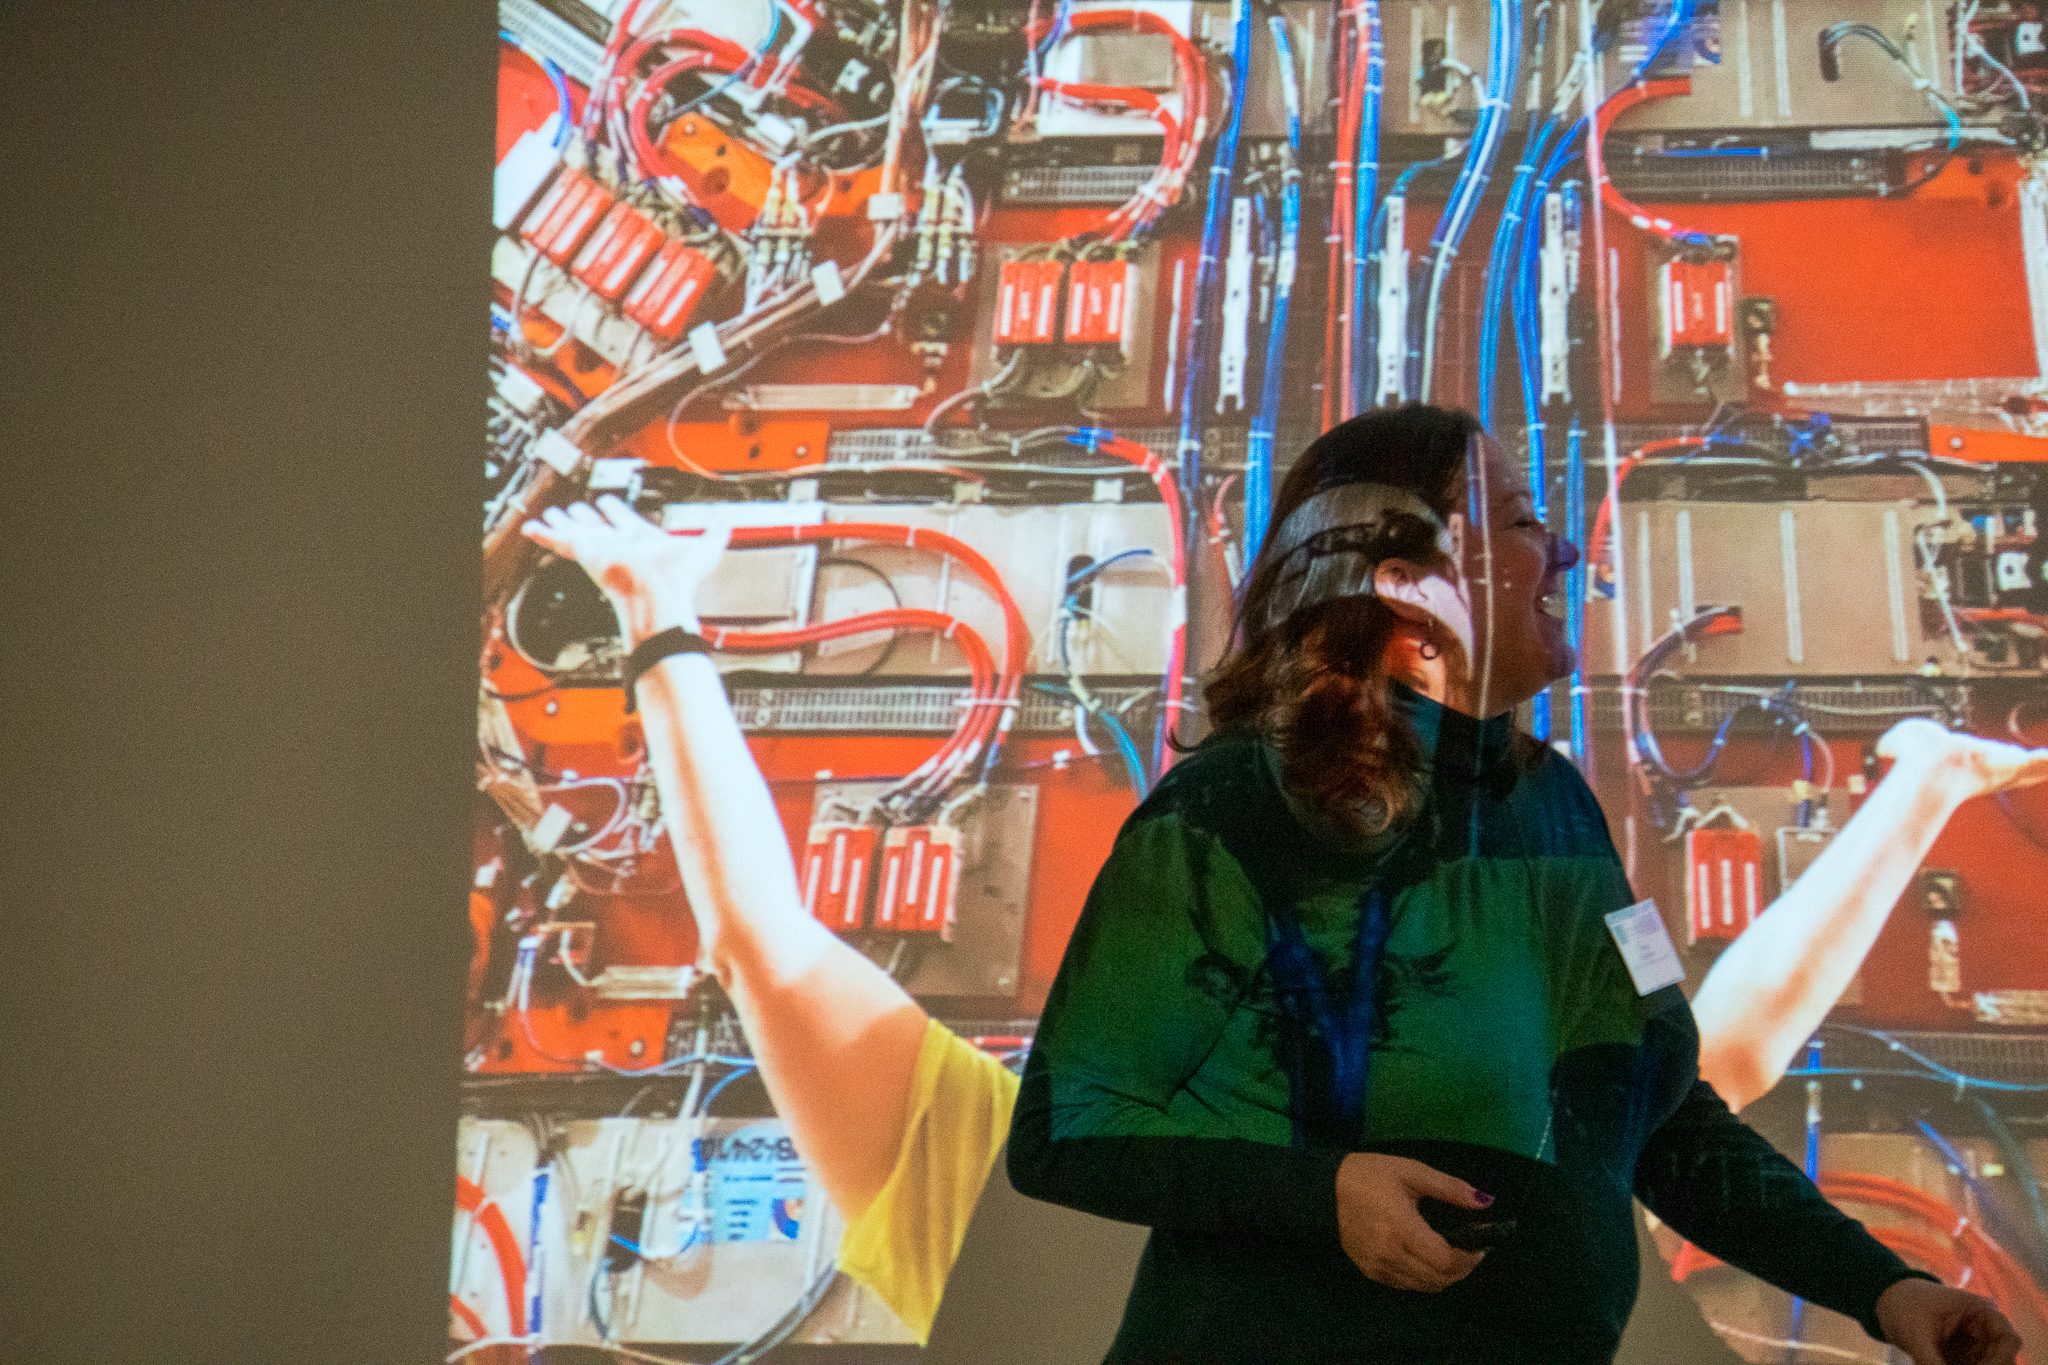 LPC Distinguished Researcher Freya Blekman talks at the CMS Data Analysis School in front of a photo of her at the CMS detector at CERN on Jan. 13. people, CMS, CERN Photo: Marguerite Tonjes